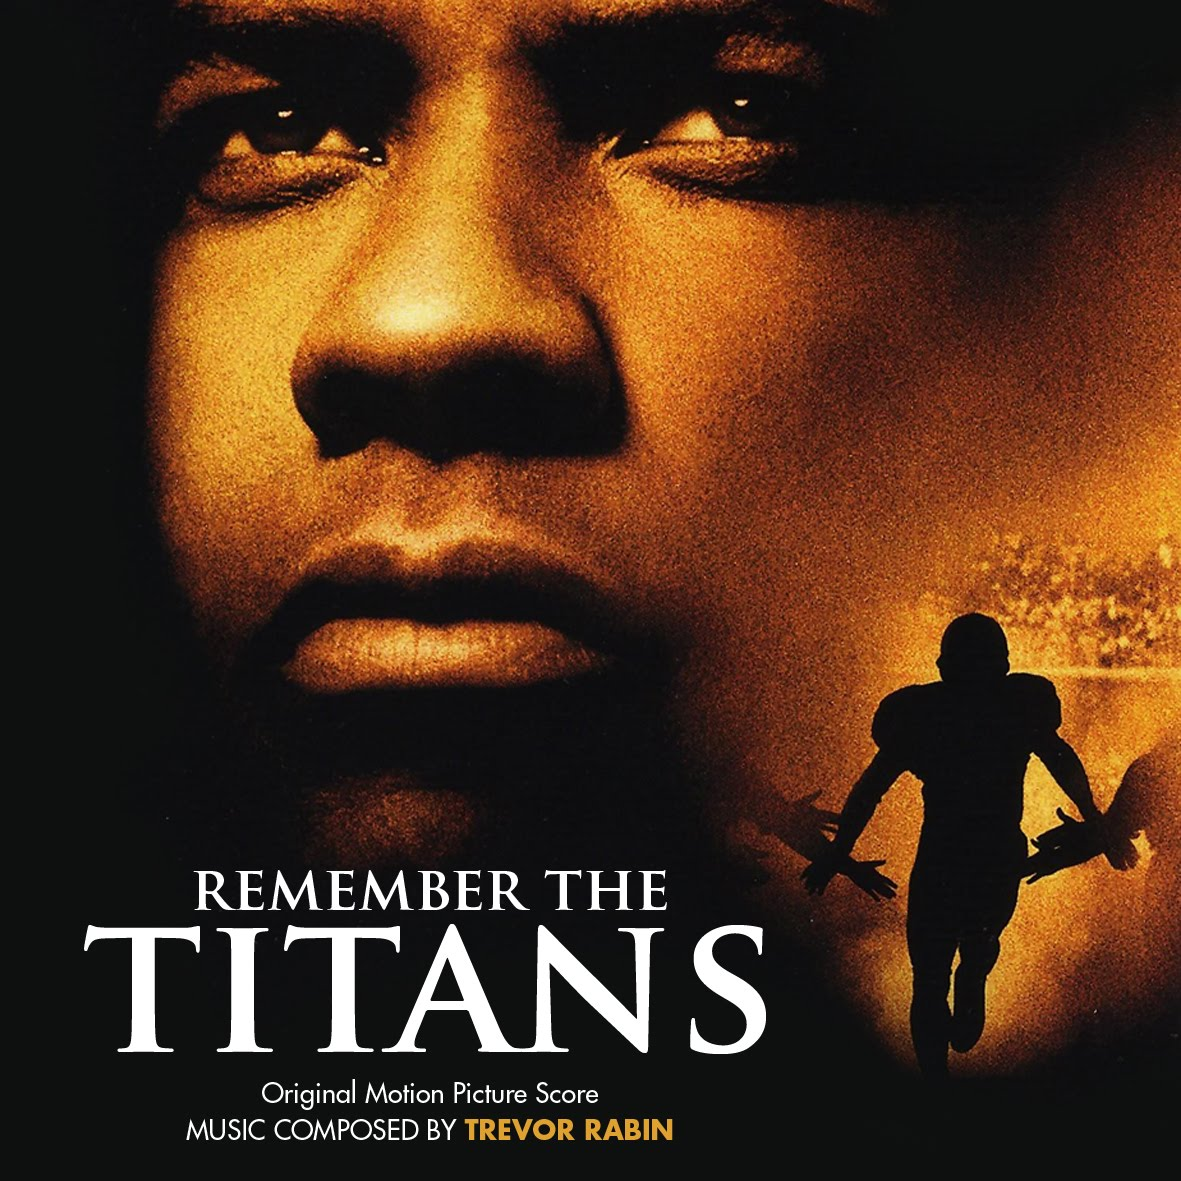 leadership in remember the titans essay